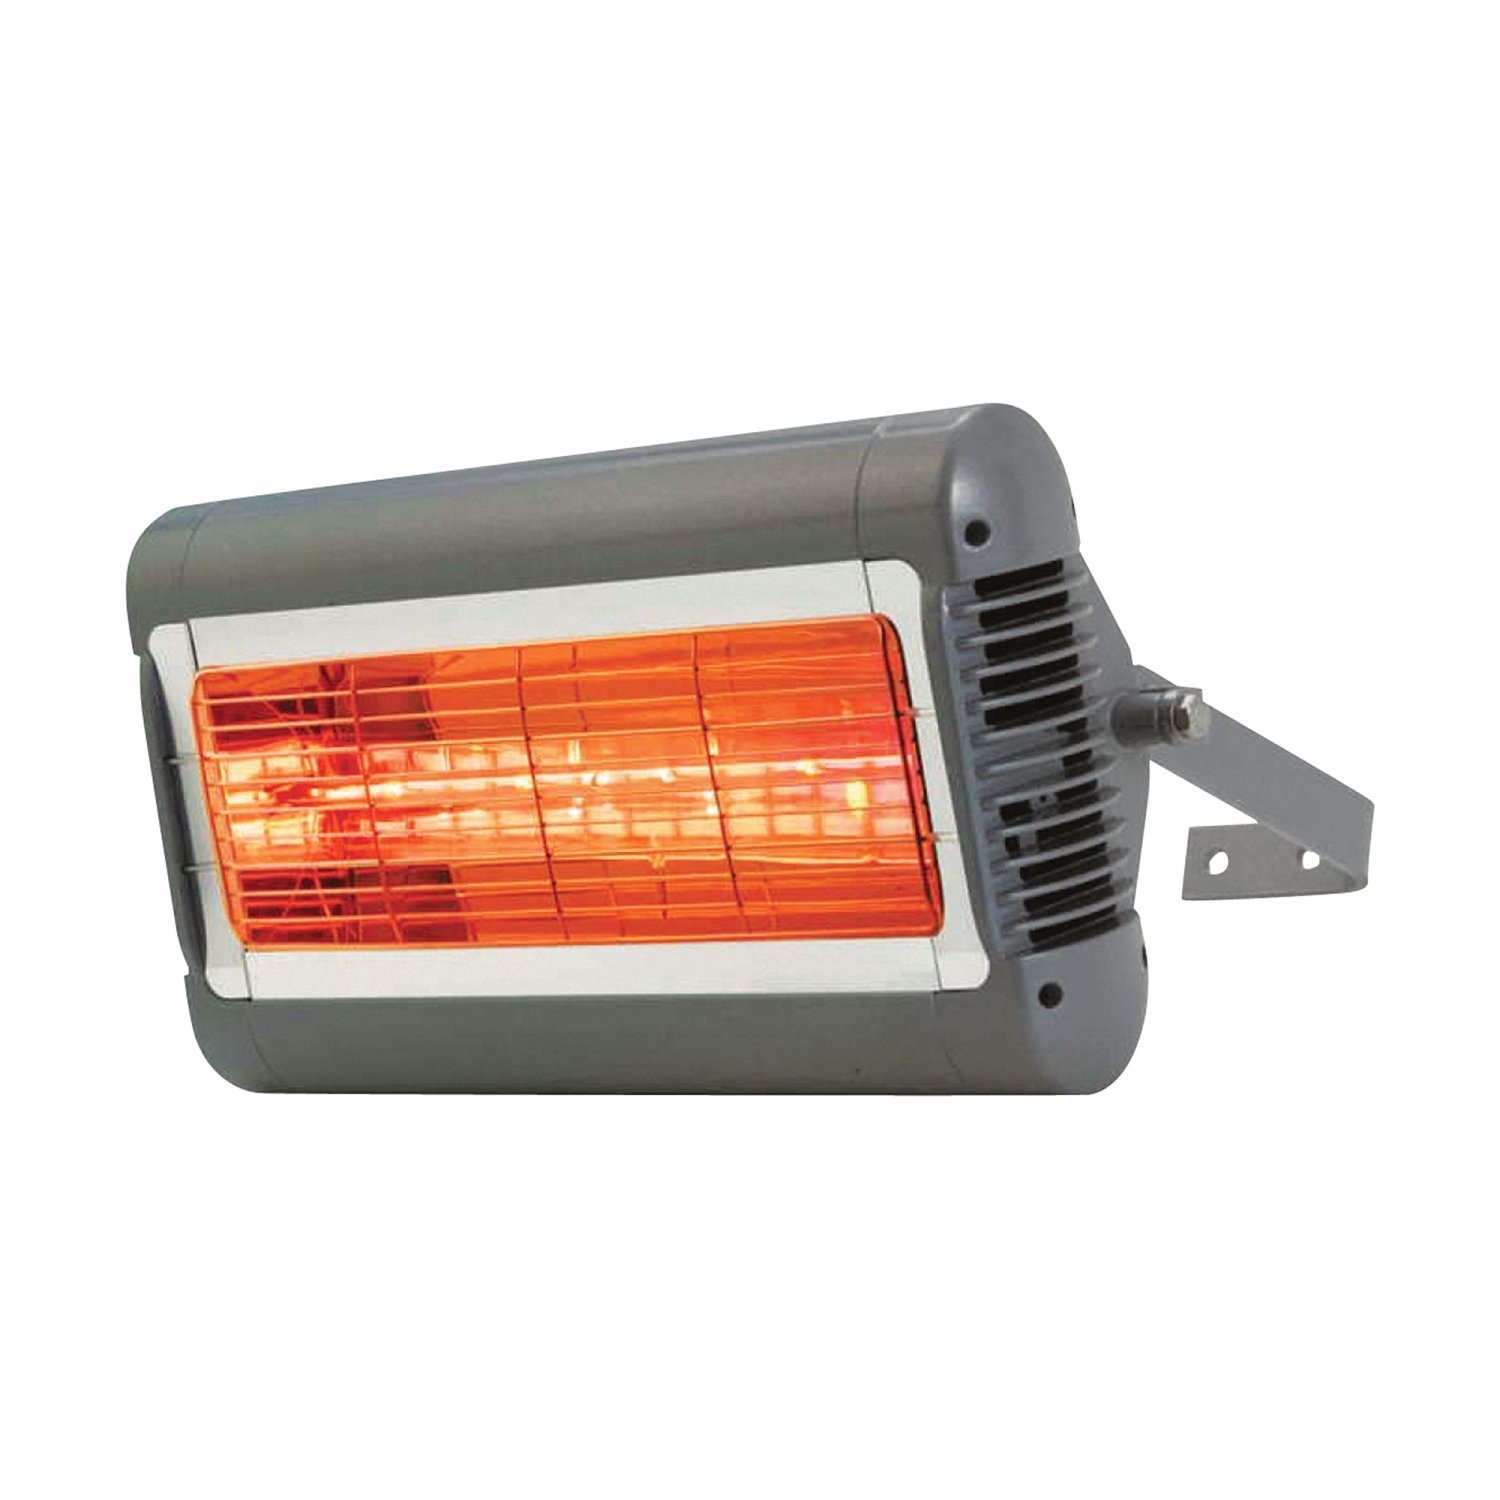 Solaria Electric Infrared Heater - Commercial-Grade, Indoor/Outdoor, 1500 Watts, 240 Volts, Model# SALPHA15240S